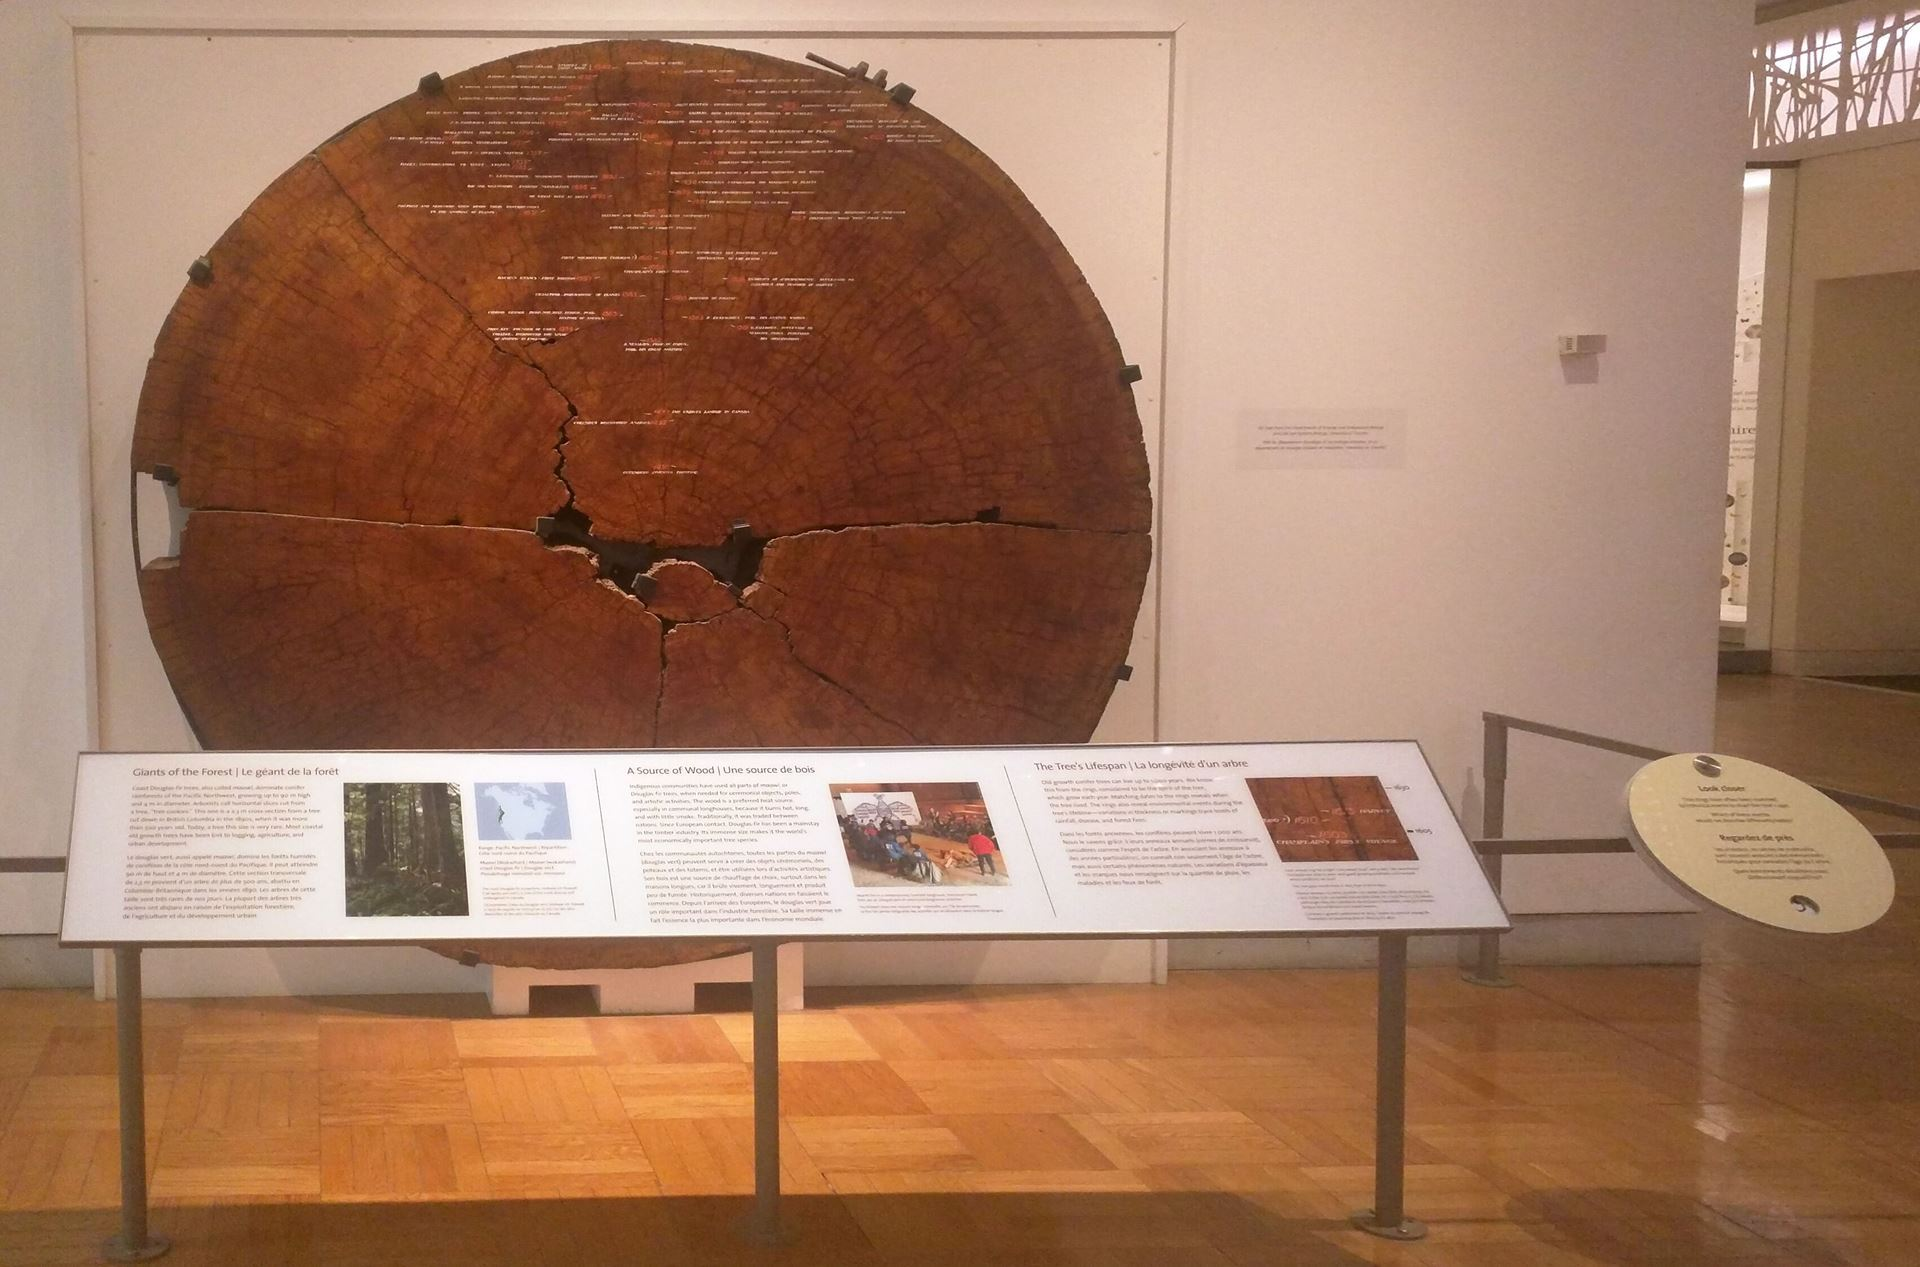 Tree cookie on display at Royal Ontario Museum - an IC blog